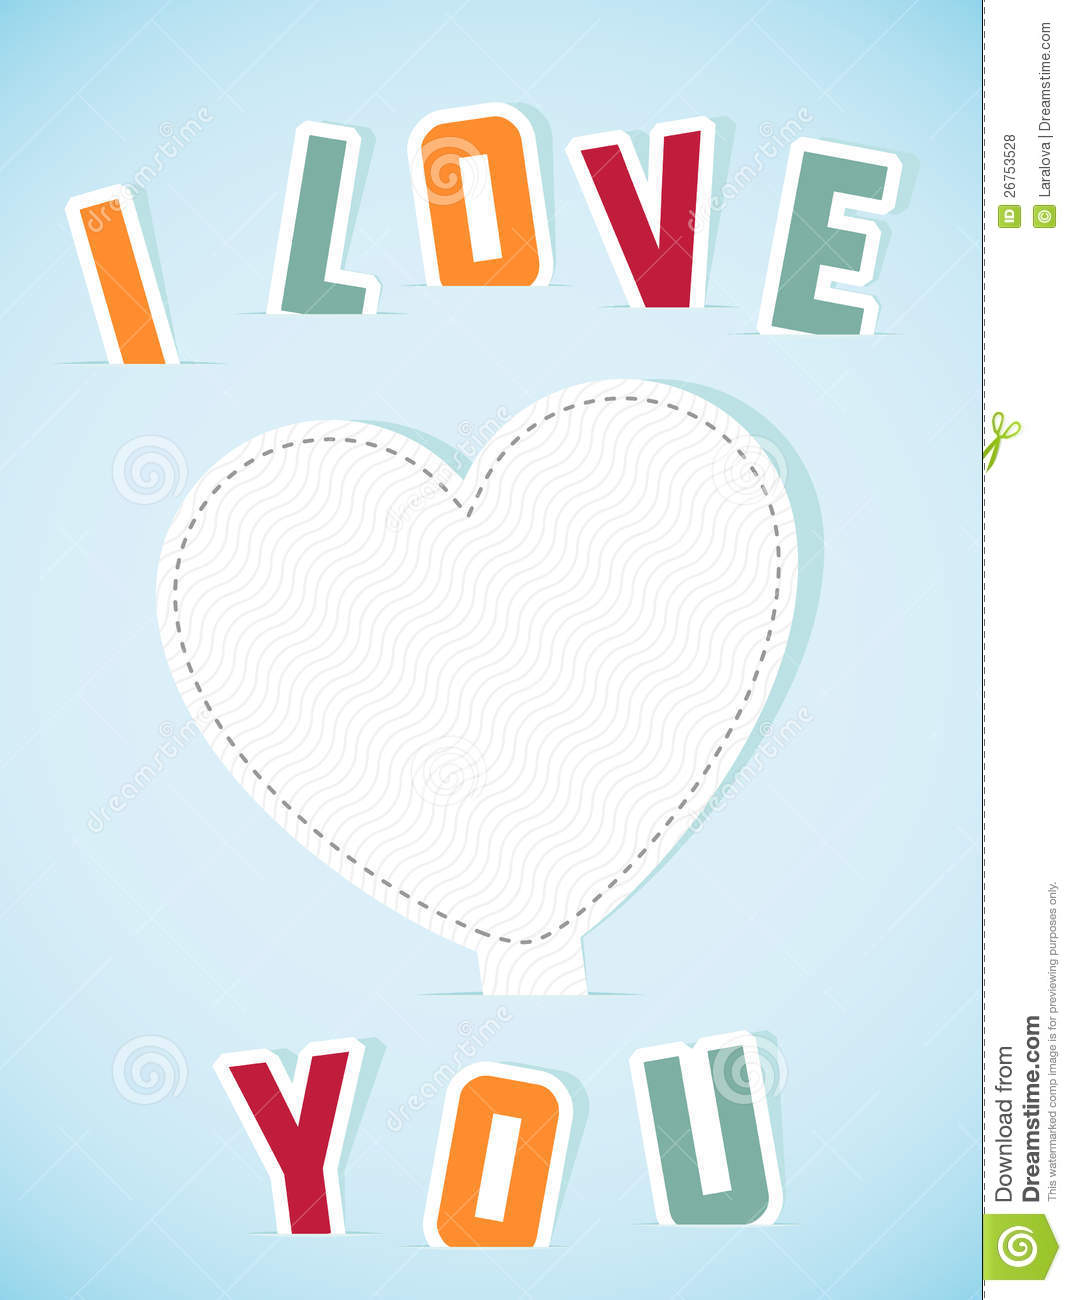 i love you essays Love is all you need essay love is definitely one of the most powerful feelings that people can ever experience in their lives it has been inspiring, giving hope and the sense of life for people for thousands of years, and its role has never been diminished.